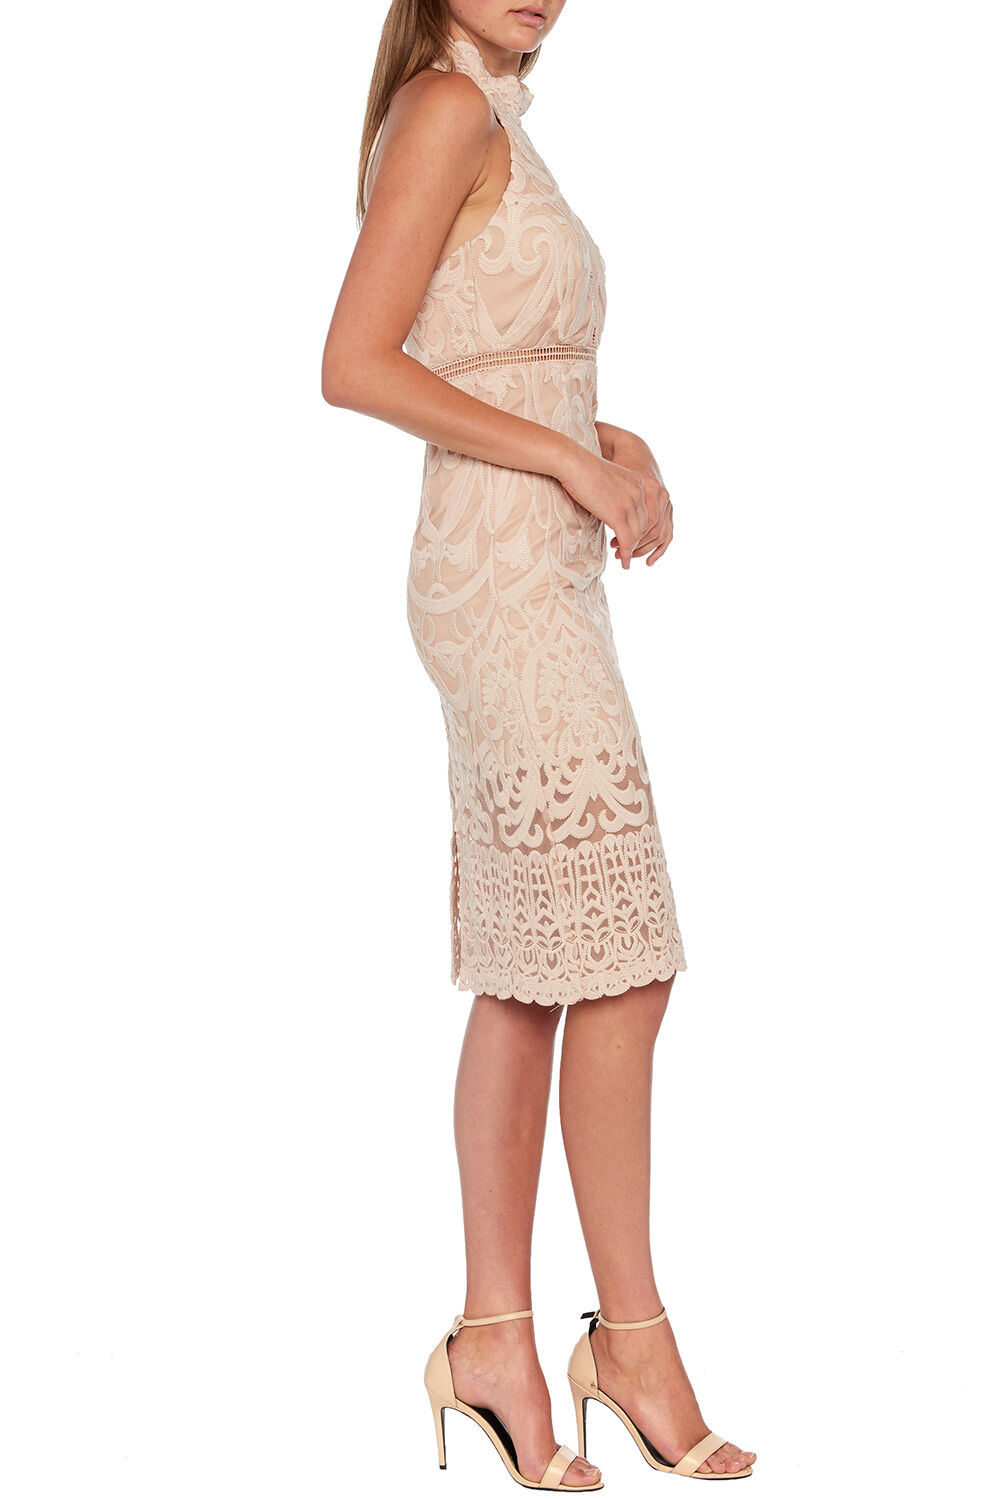 HANA LACE DRESS in colour PALE DOGWOOD